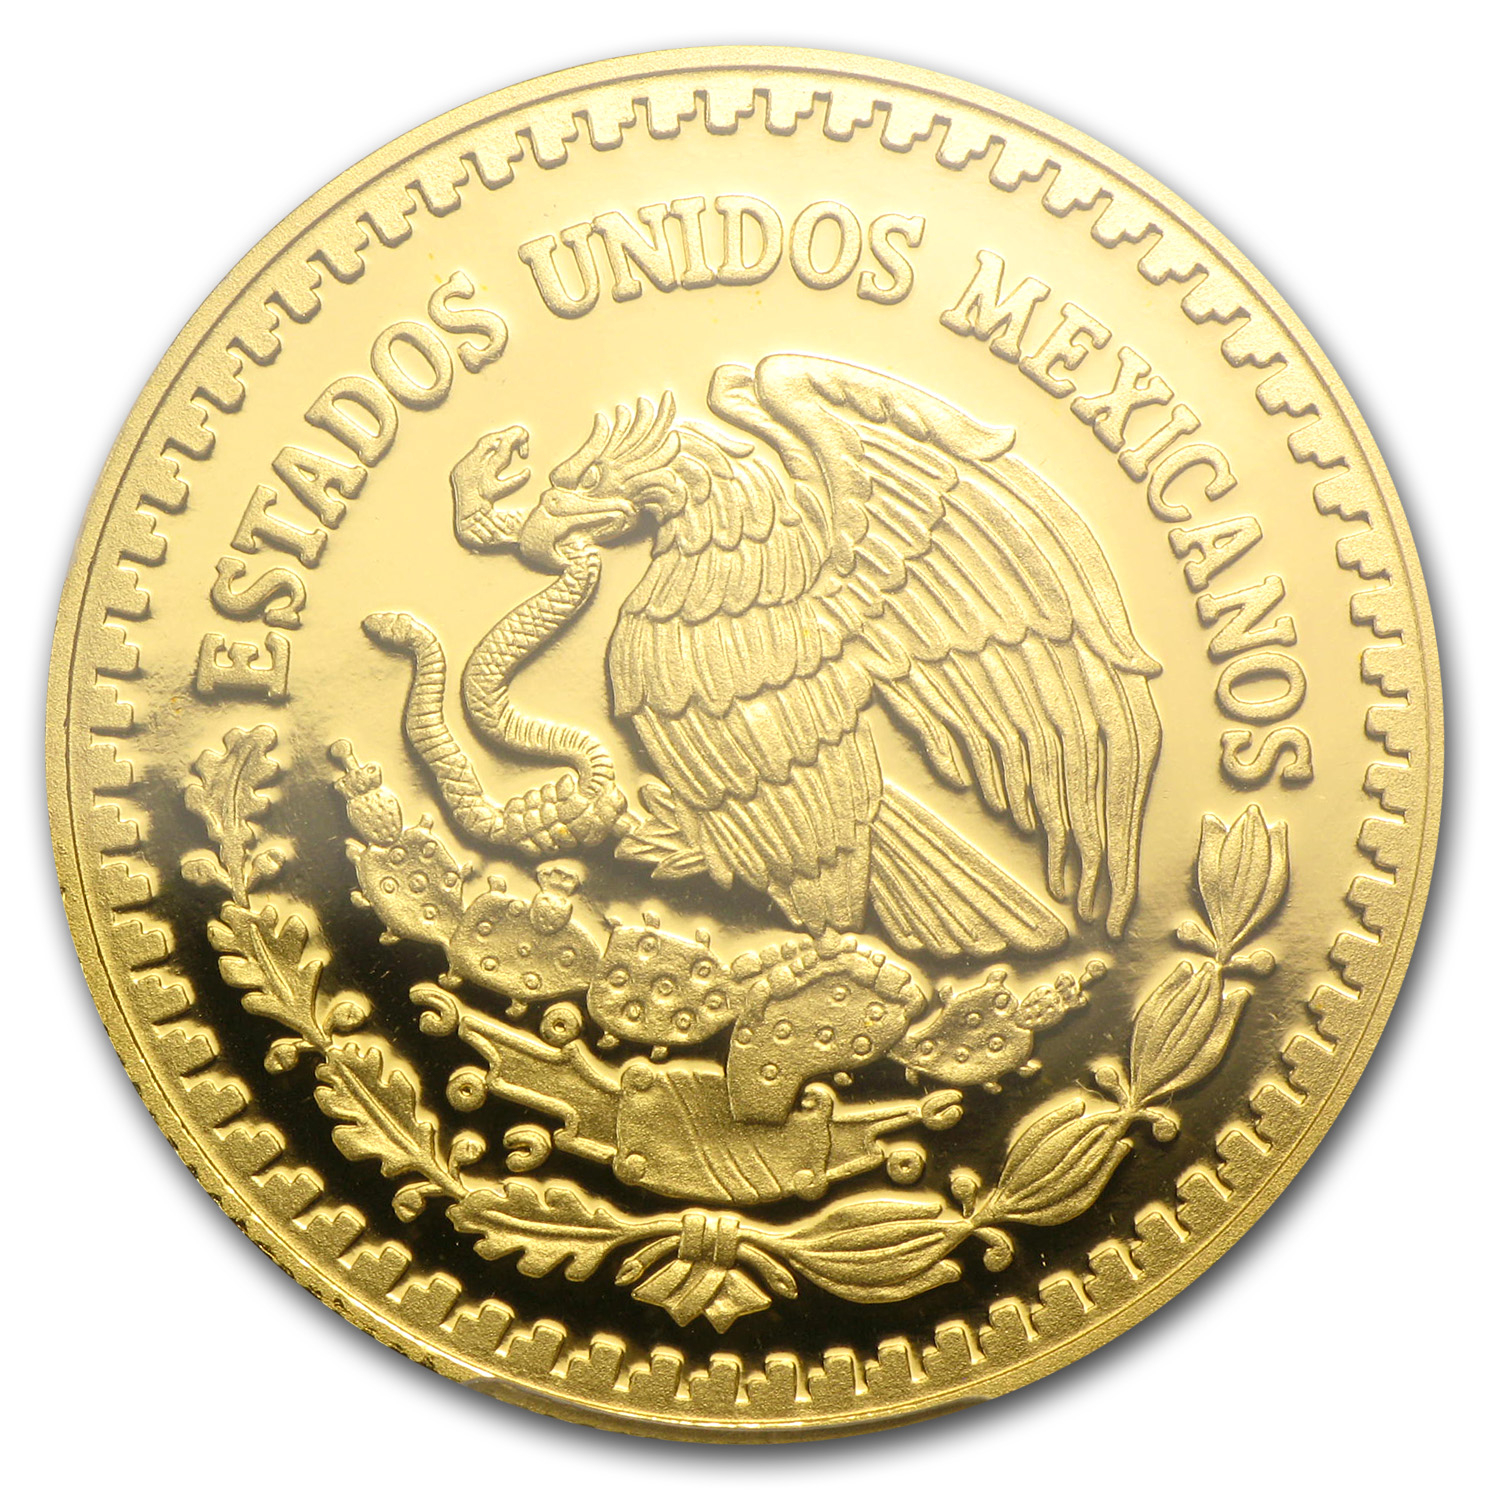 2014 1/2 oz Gold Mexican Libertad PR-70 PCGS (Registry Coin)